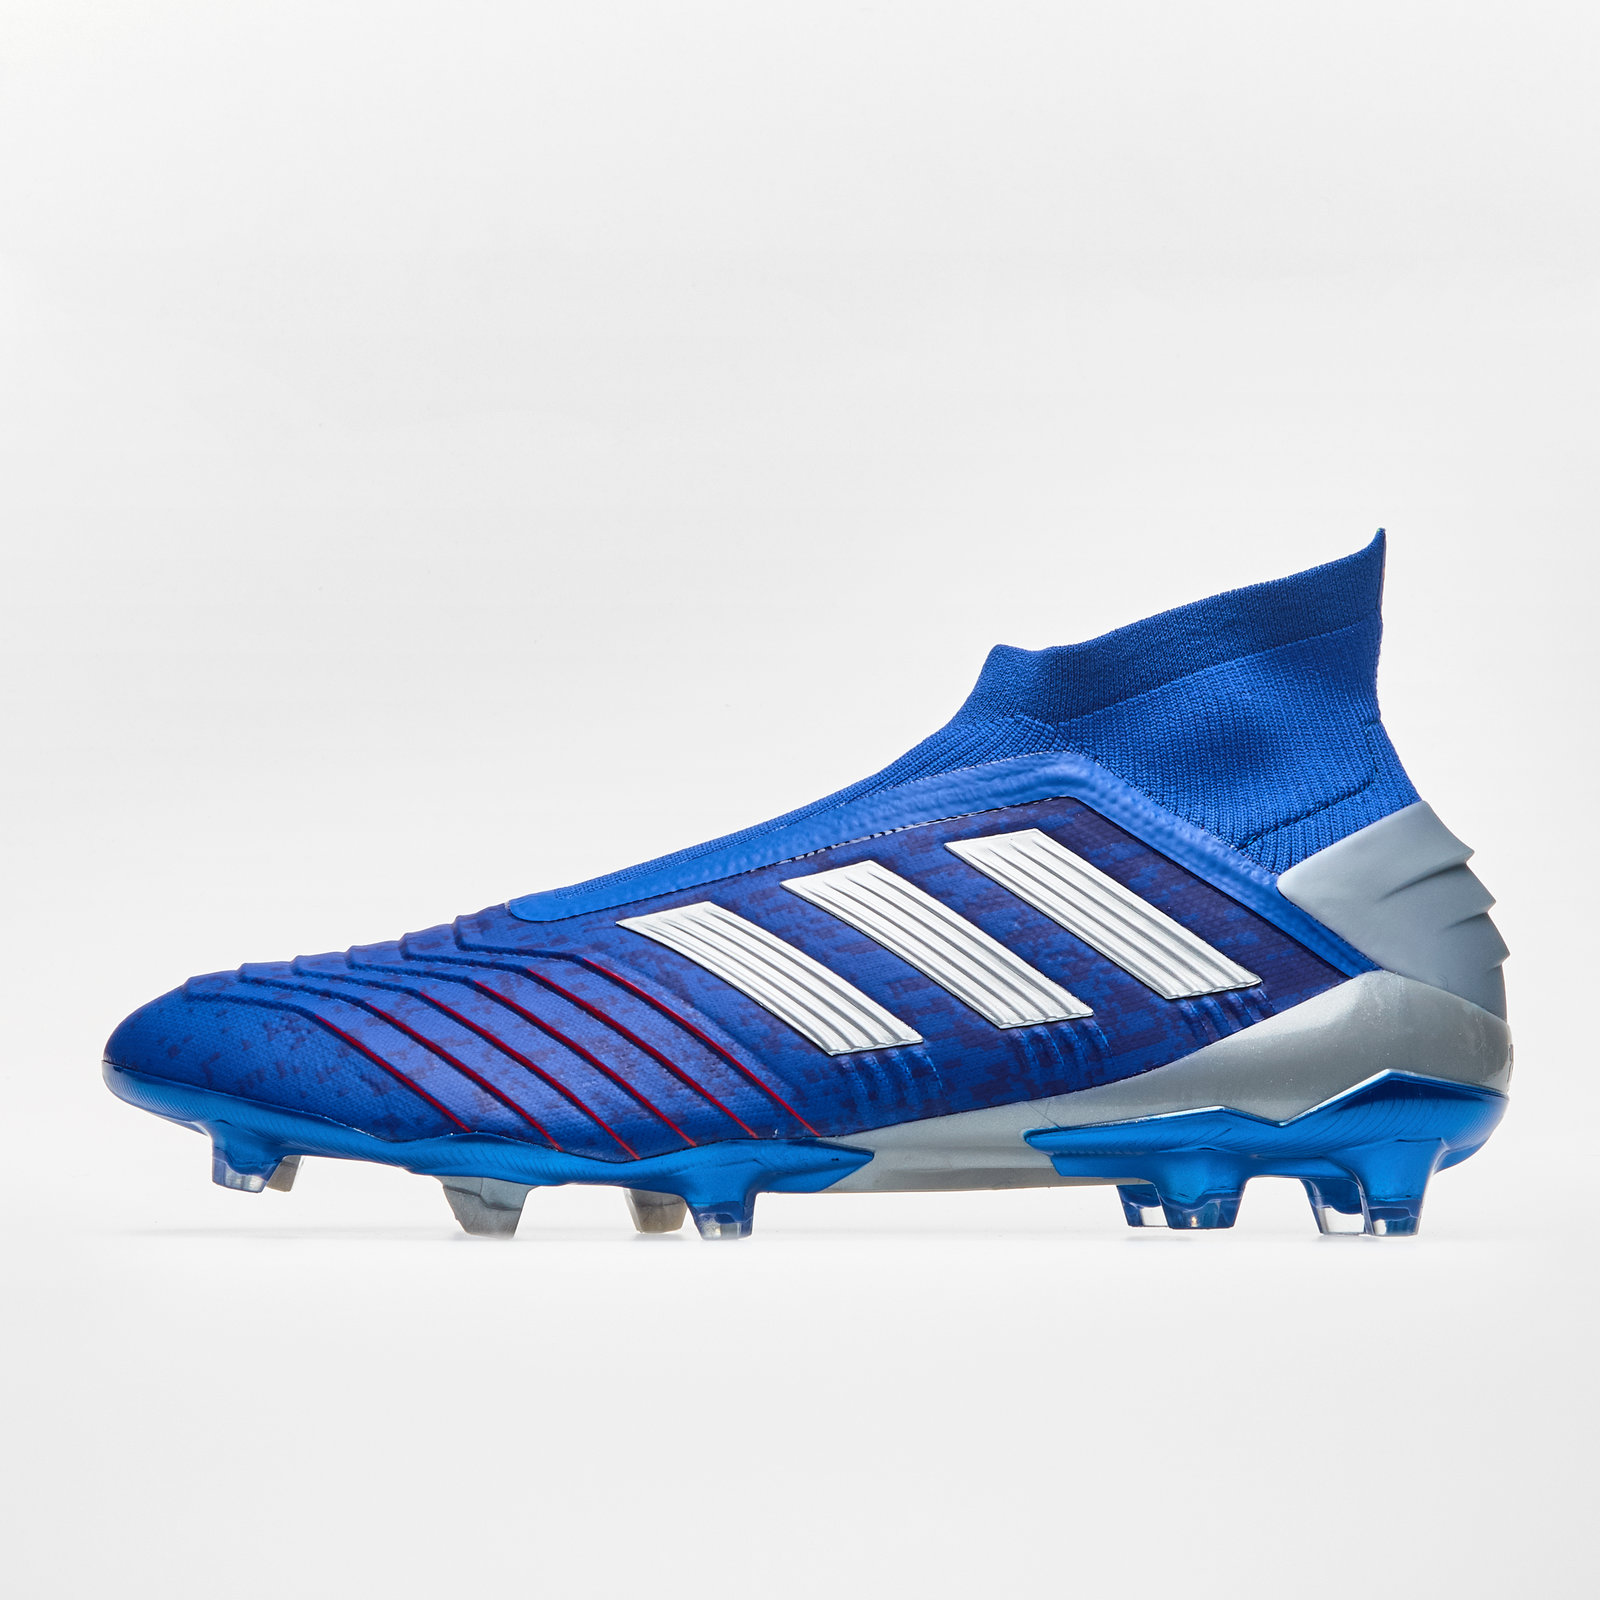 Predator 19+ FG Football Boots